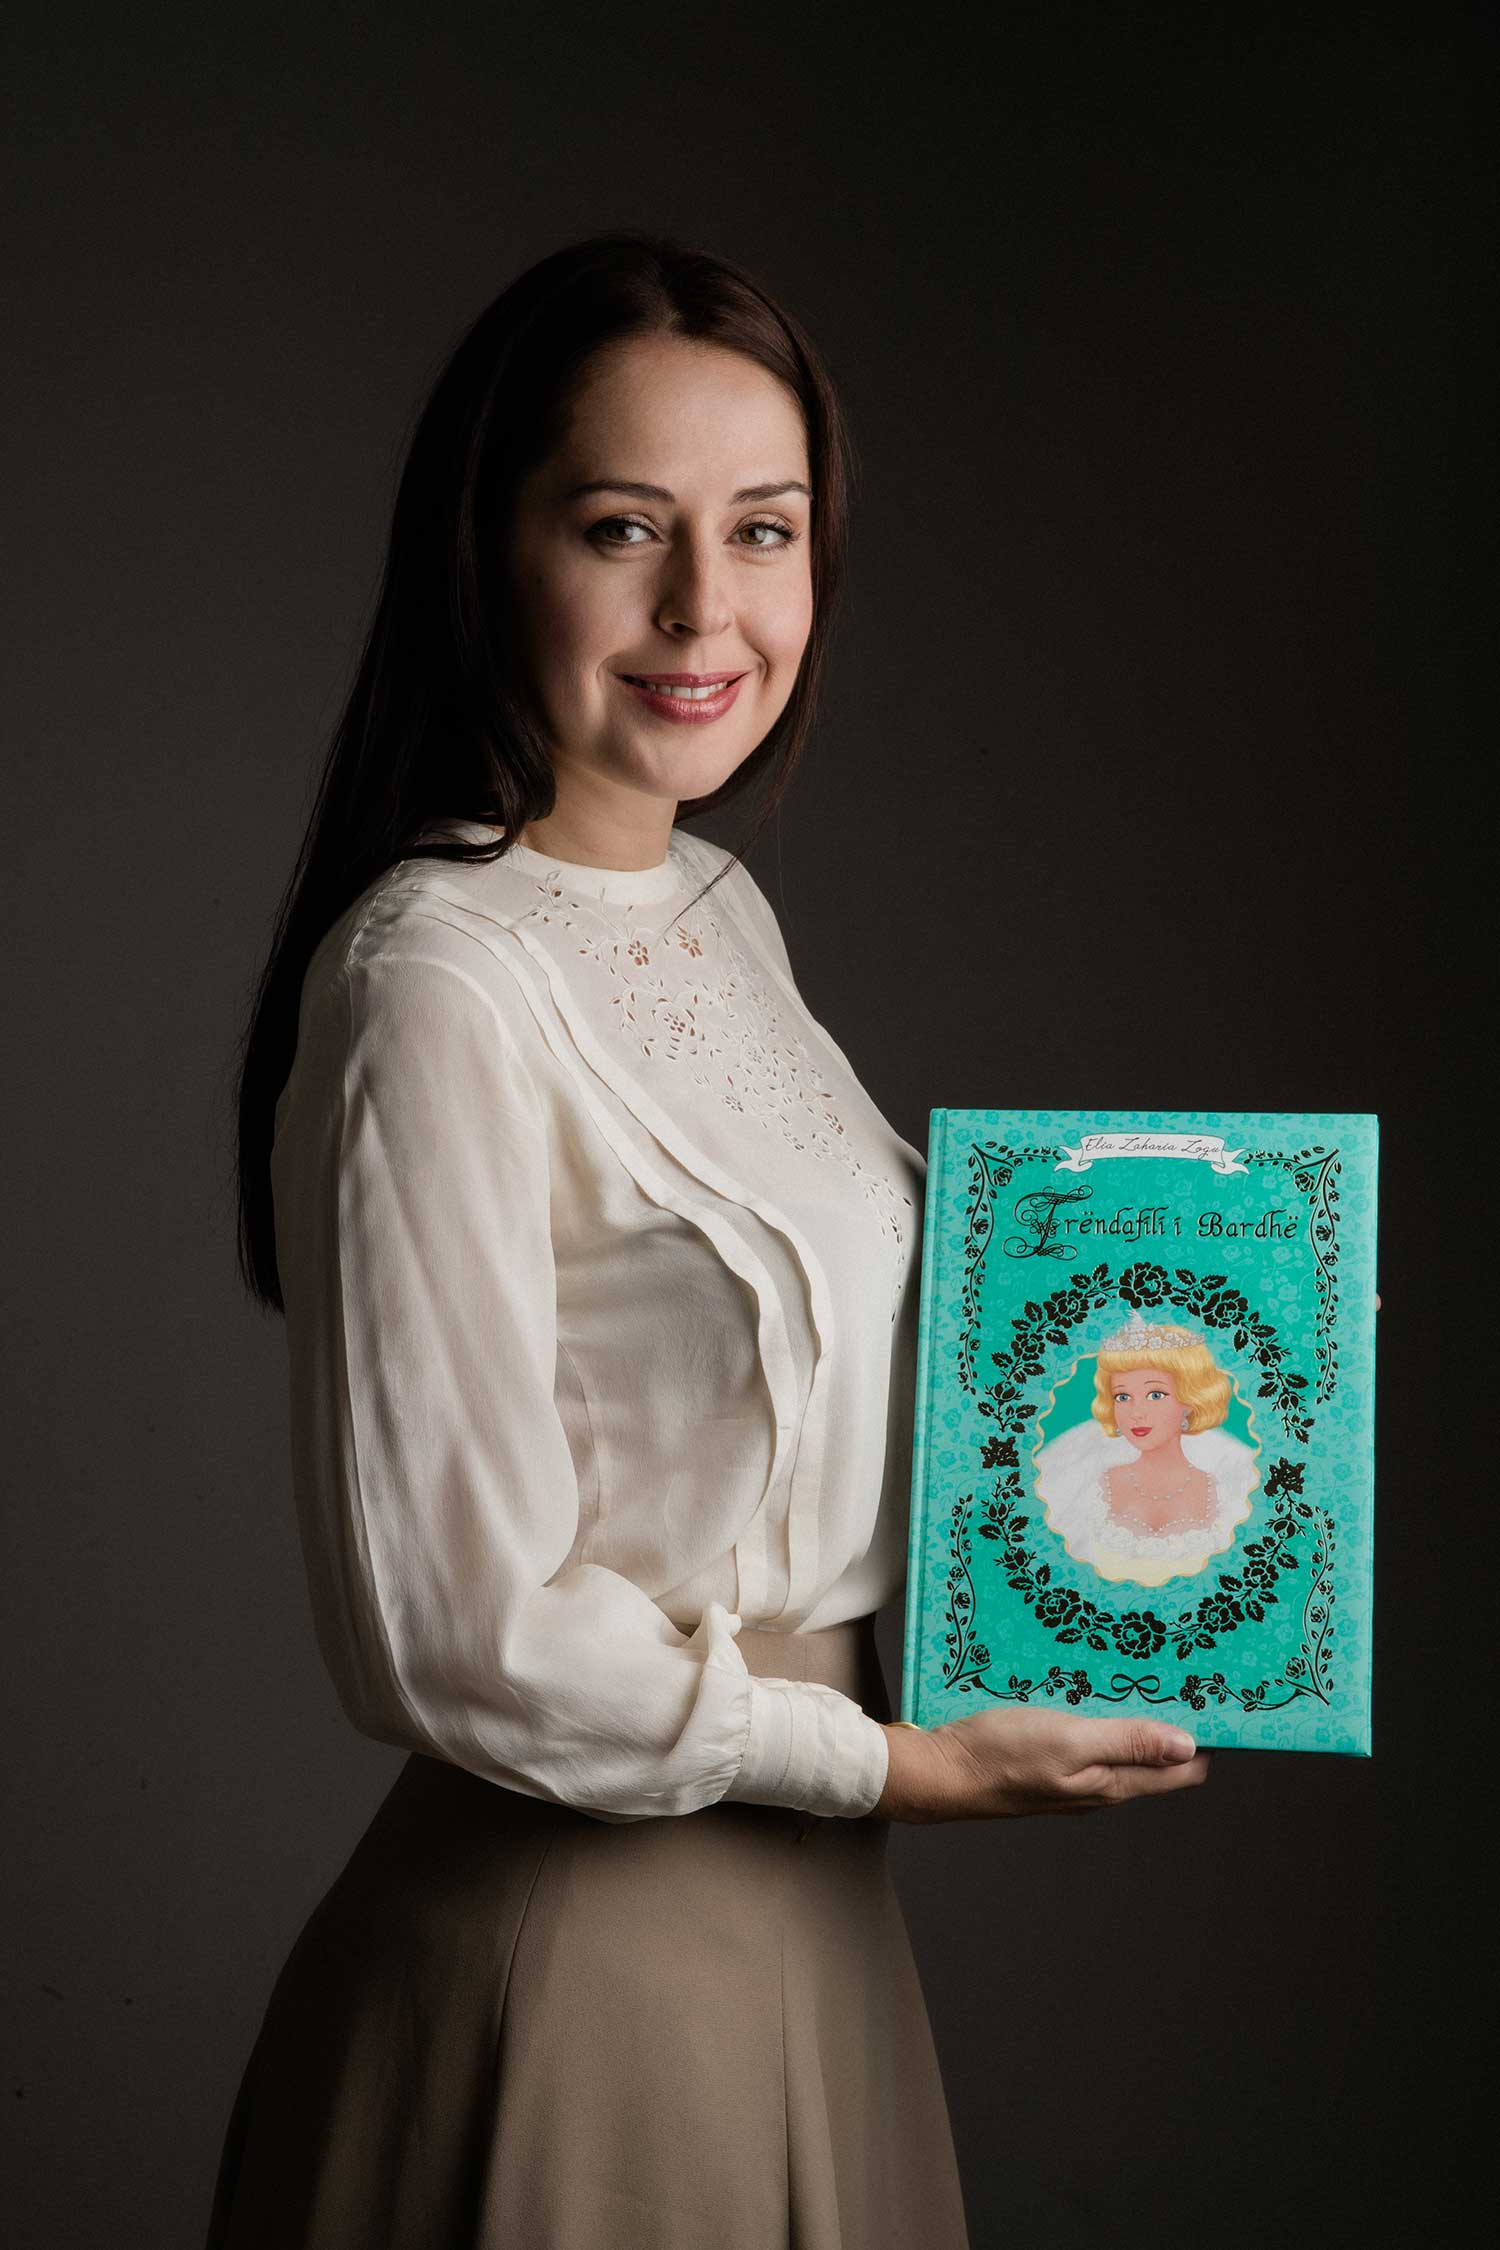 Portrait photography of Elia and her first book